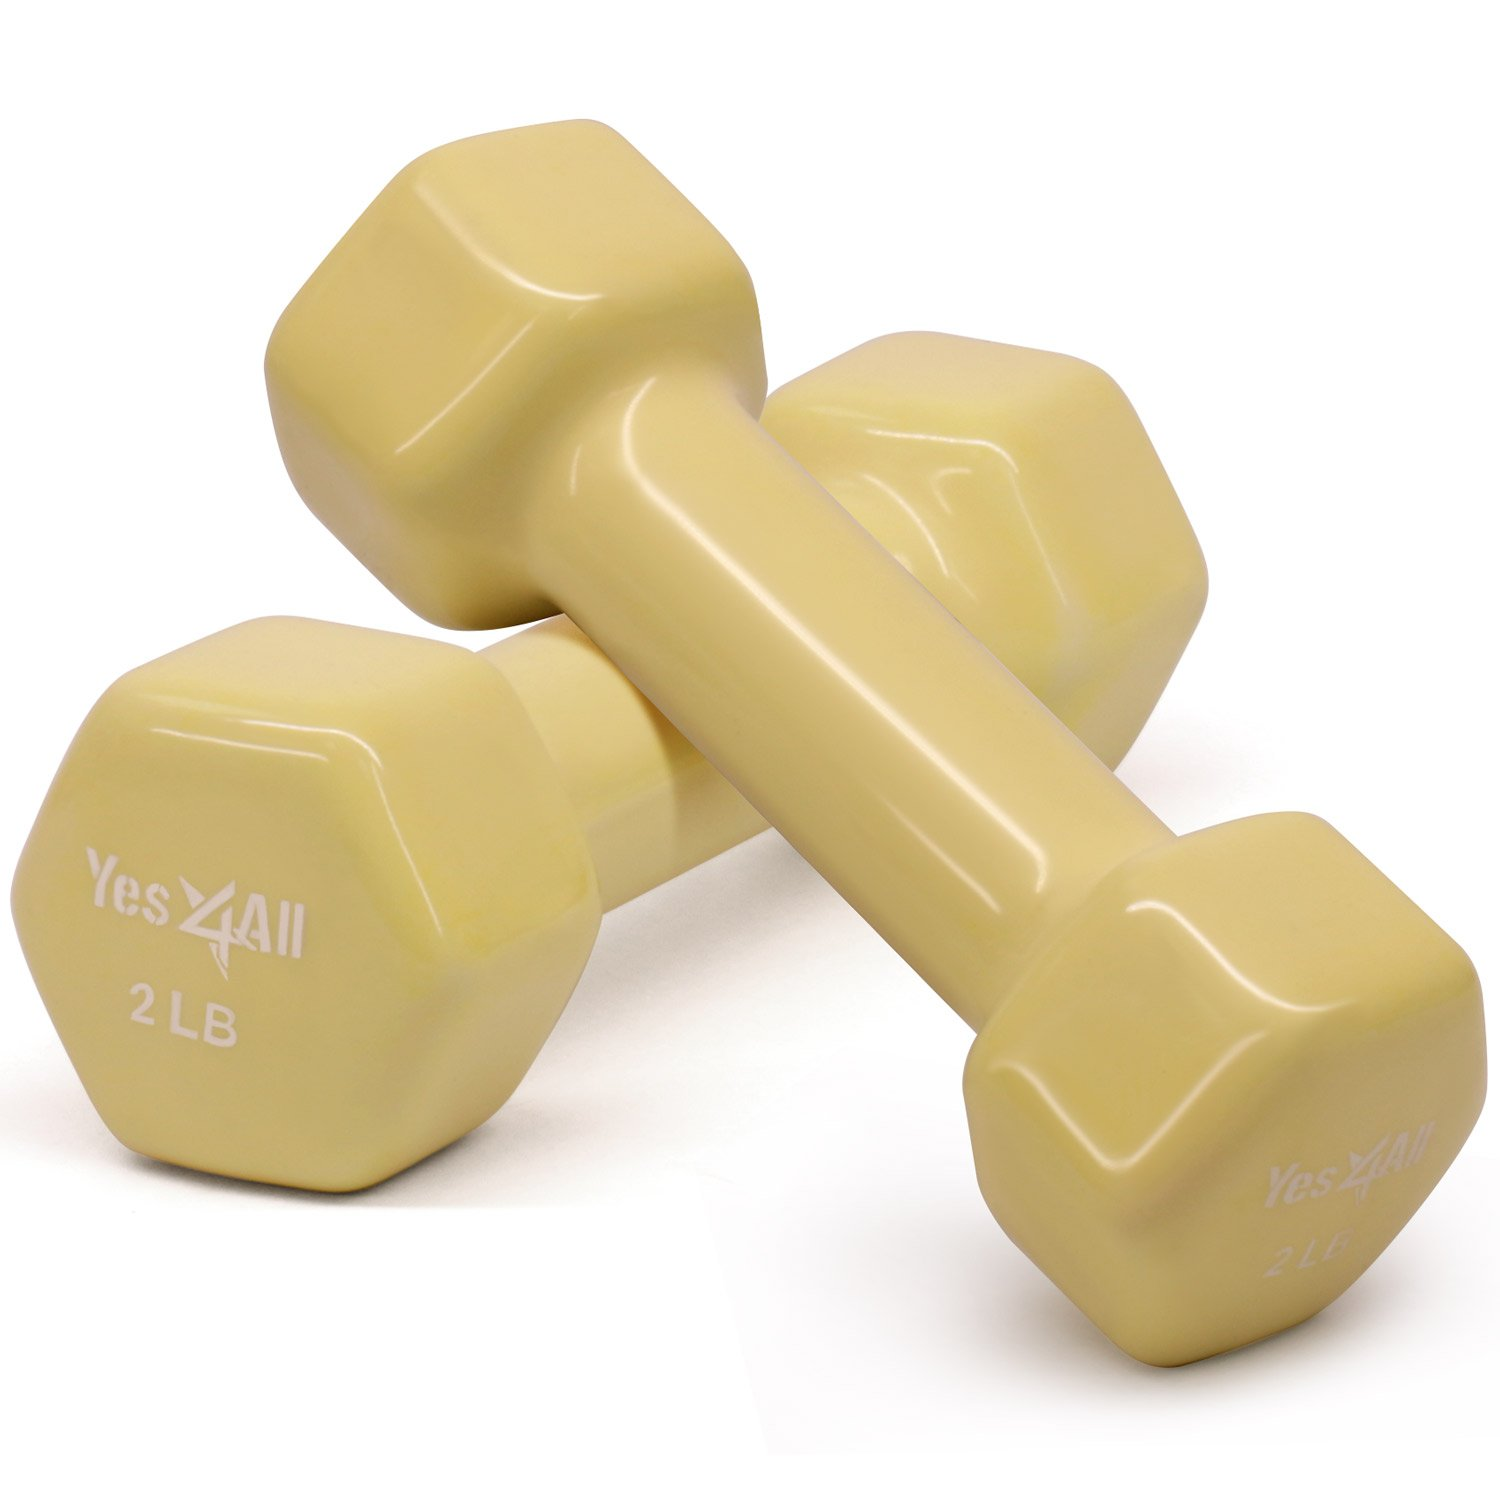 Yes4All Deluxe Vinyl Coated Cast Iron Dumbbell Weights - PVC Dumbbell Sets for a Total Body Workout (Sets of 2, Yellow, 2lbs)